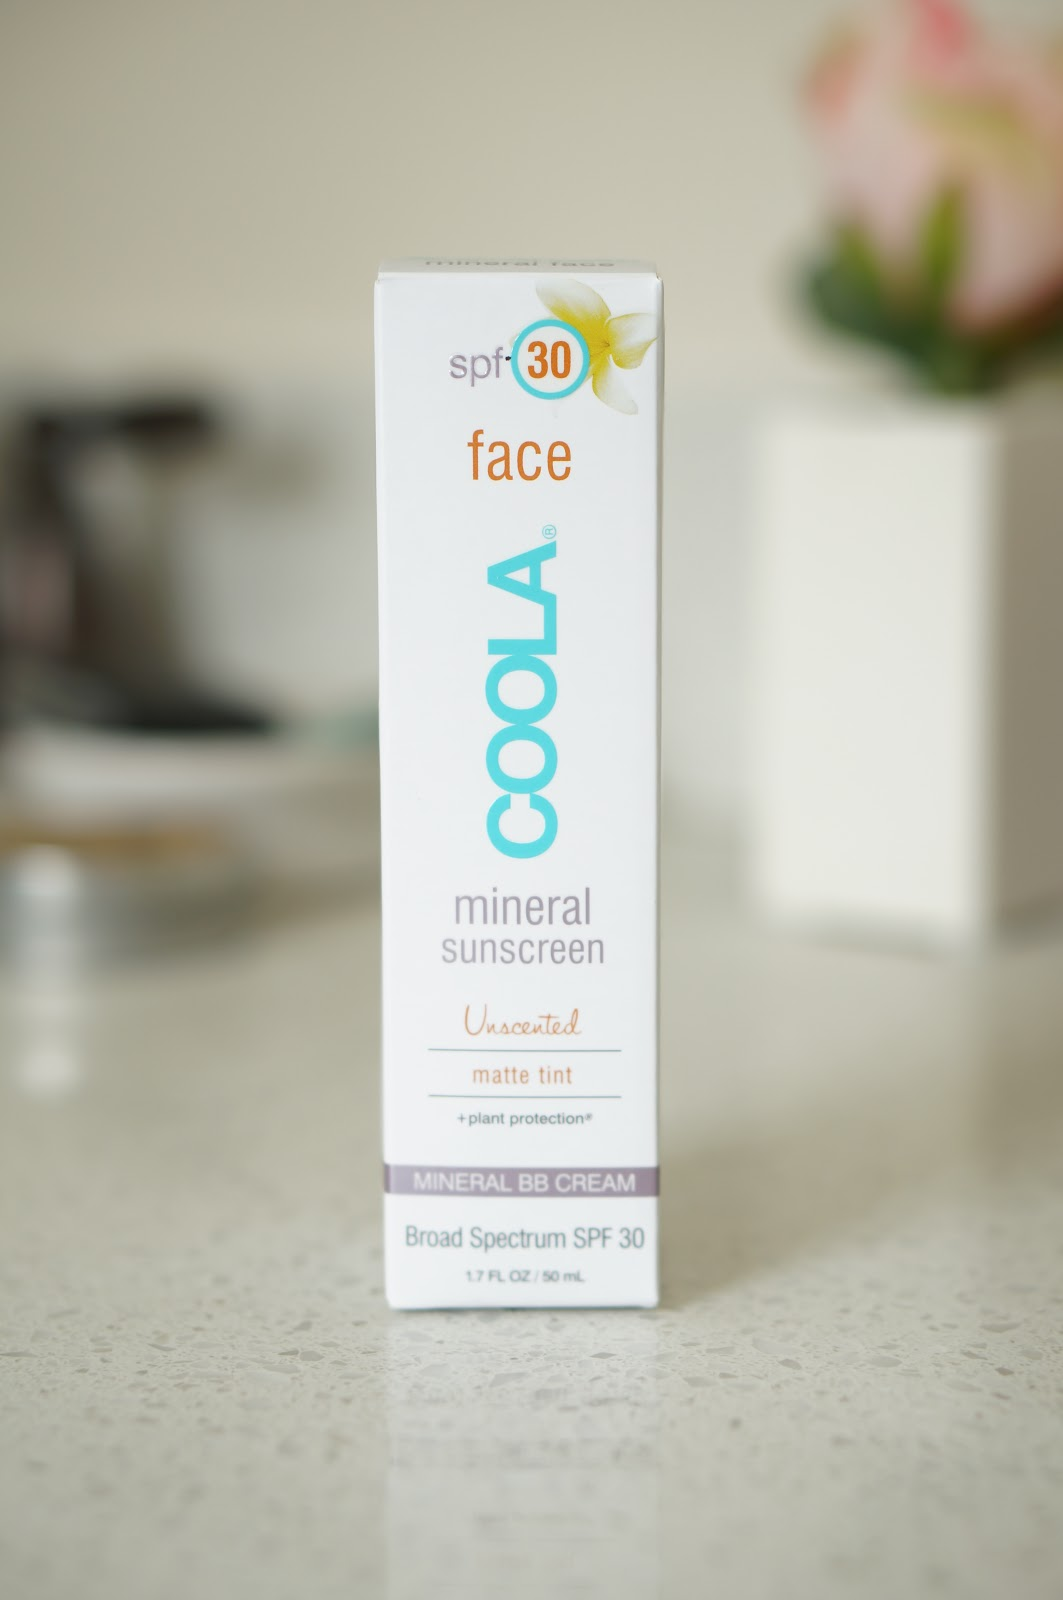 Popular North Carolina style blogger Rebecca Lately shares her review of the Coola BB Cream. Check out this cruelty free BB cream!